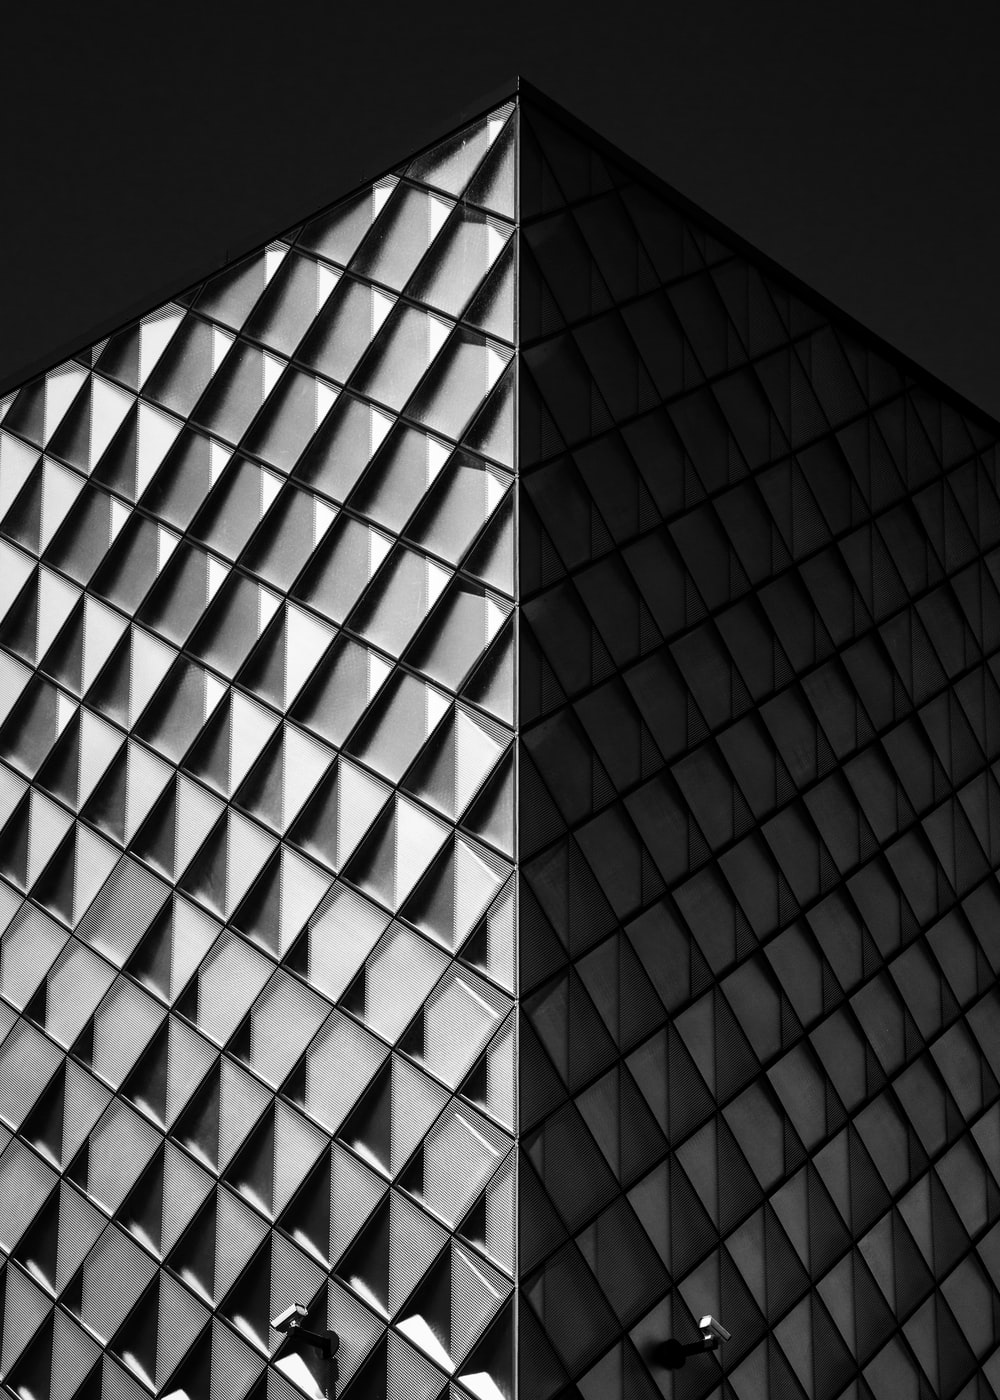 grayscale photo of pyramid building